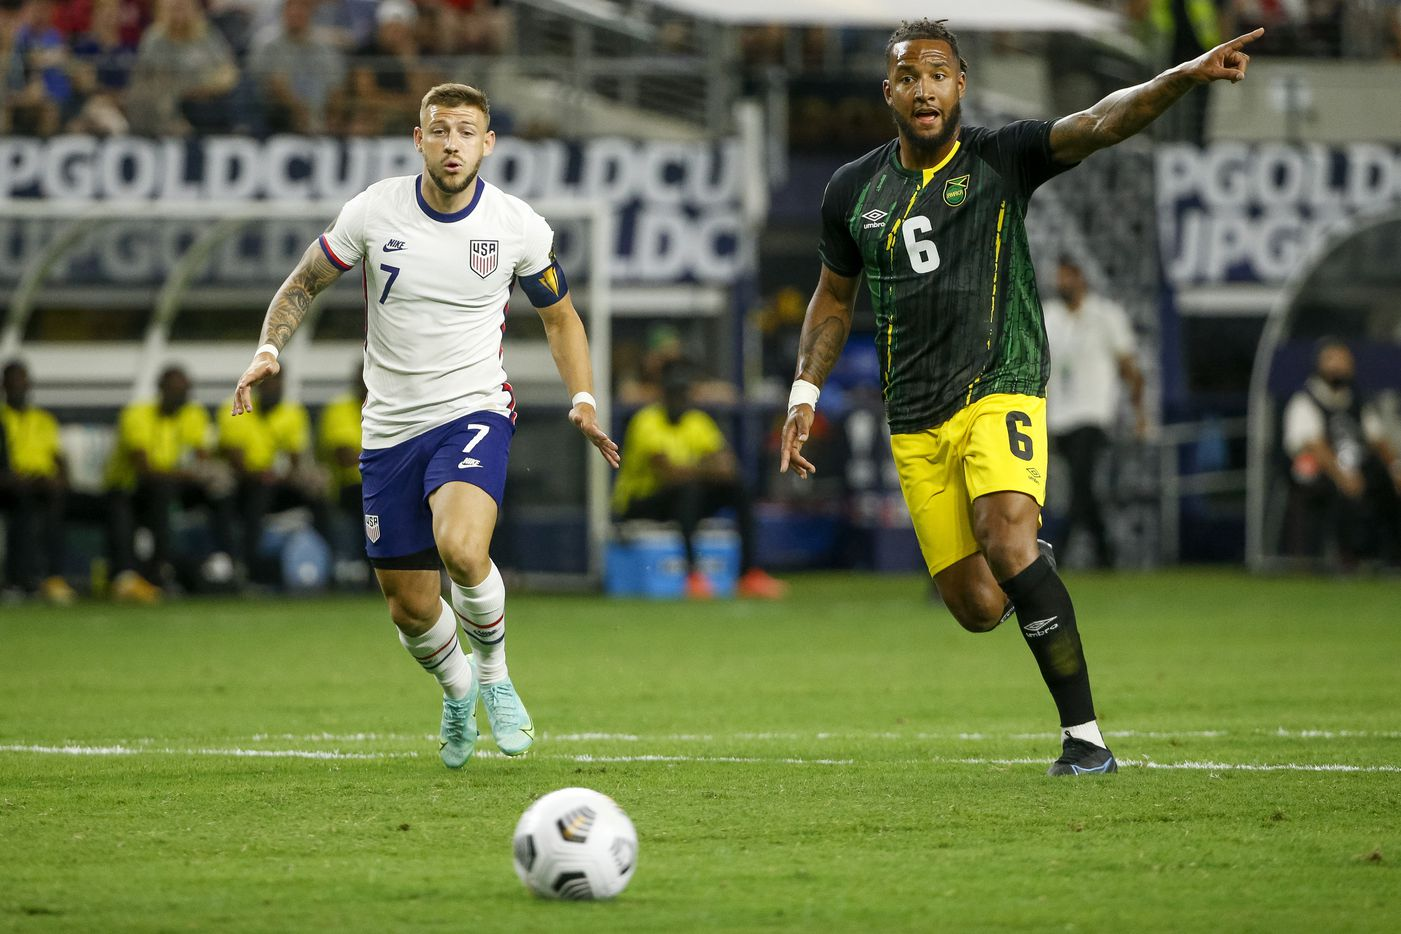 USA forward Paul Arriola (7) and Jamaica defender Liam Moore (6) chase the ball during the first half of a CONCACAF Gold Cup quarterfinal soccer match at AT&T Stadium on Sunday, July 25, 2021, in Arlington. (Elias Valverde II/The Dallas Morning News)